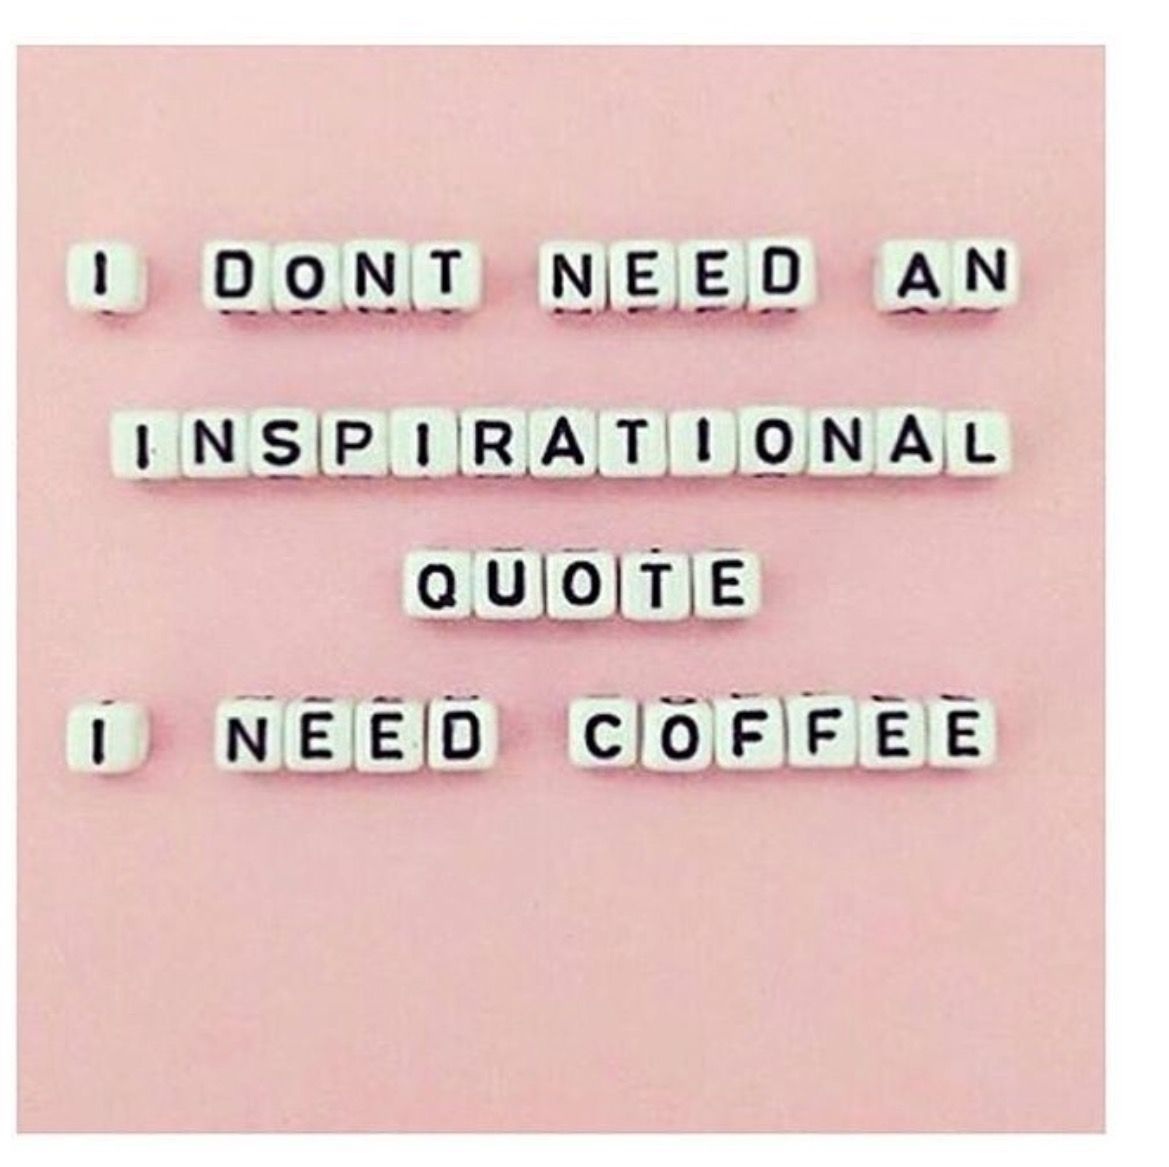 Pin By Victoria Cogle On Quotes Short Coffee Quotes Coffee Quotes Funny Quotes And Notes